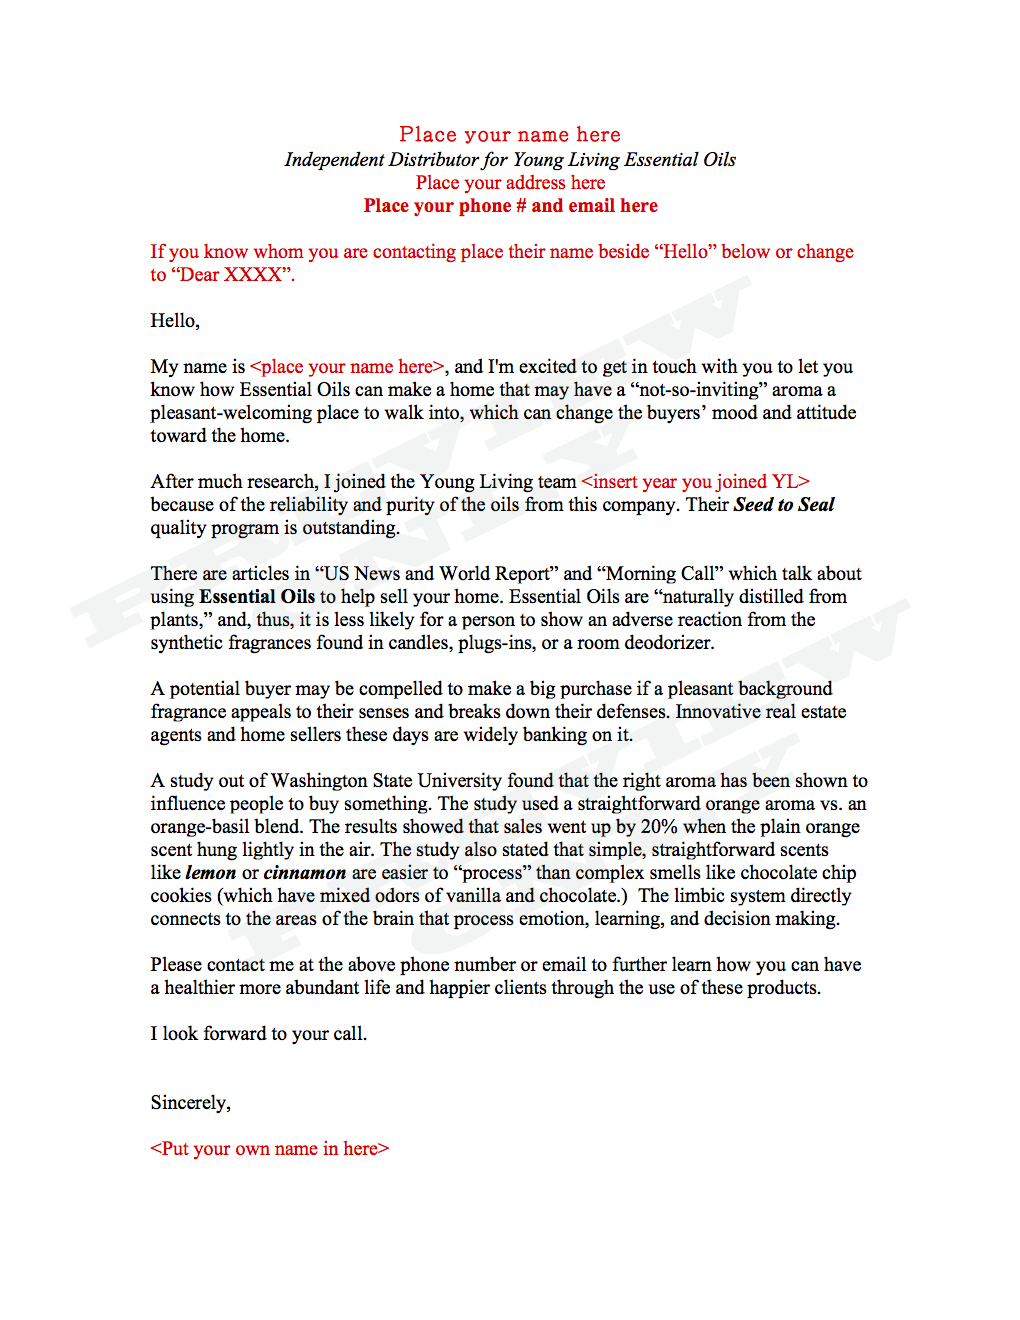 Real Estate Agent: Greeting Letter | The Oil Posse